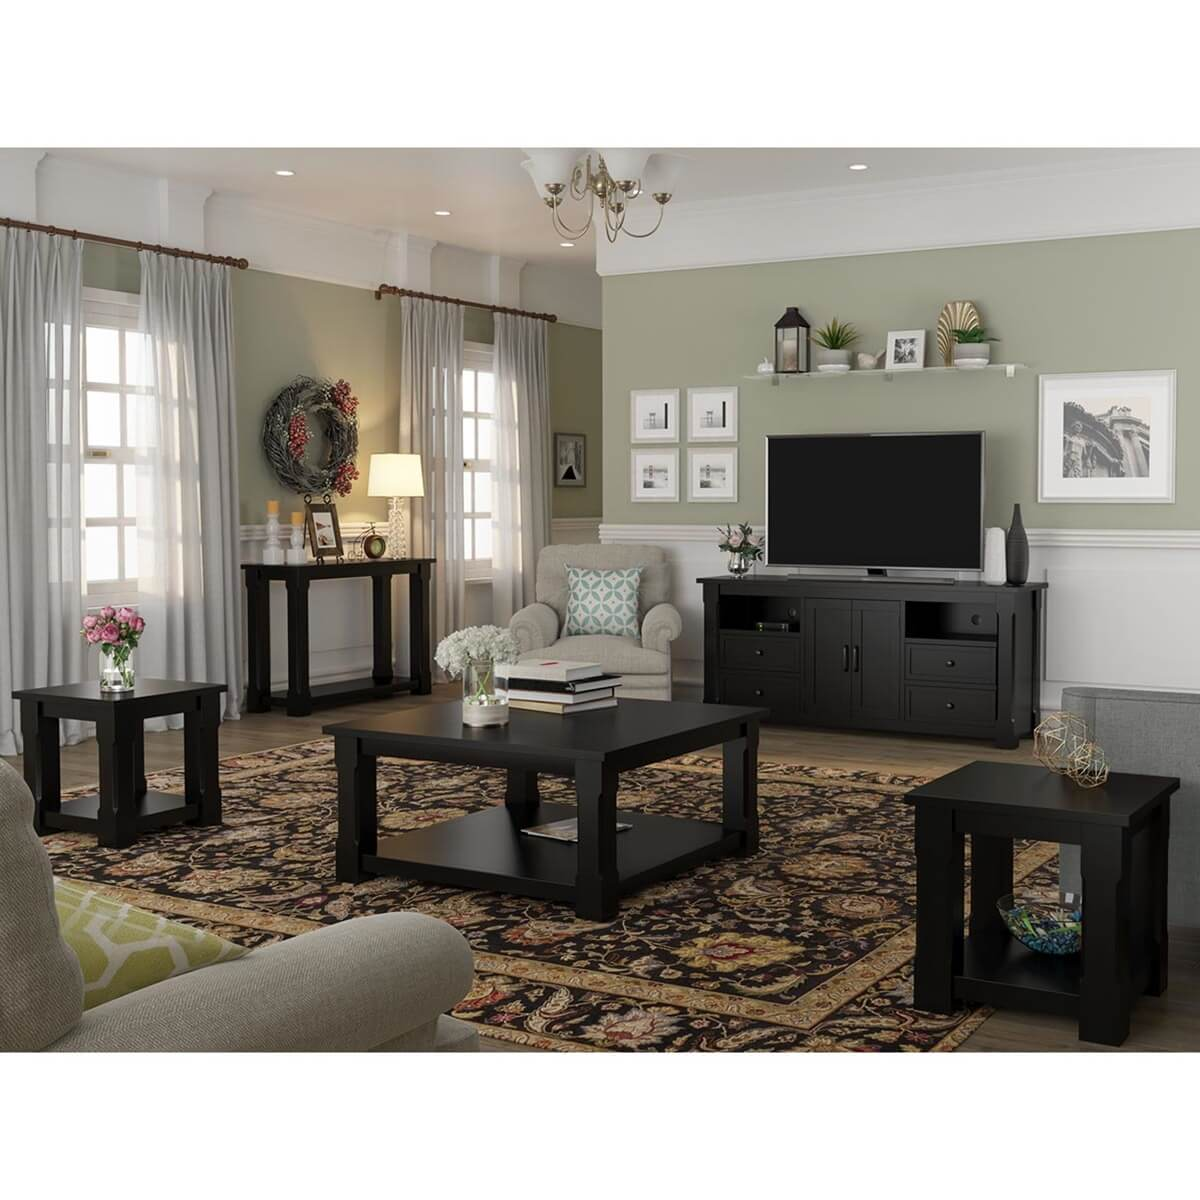 Brimson Contemporary Style 5 Piece Living Room Set